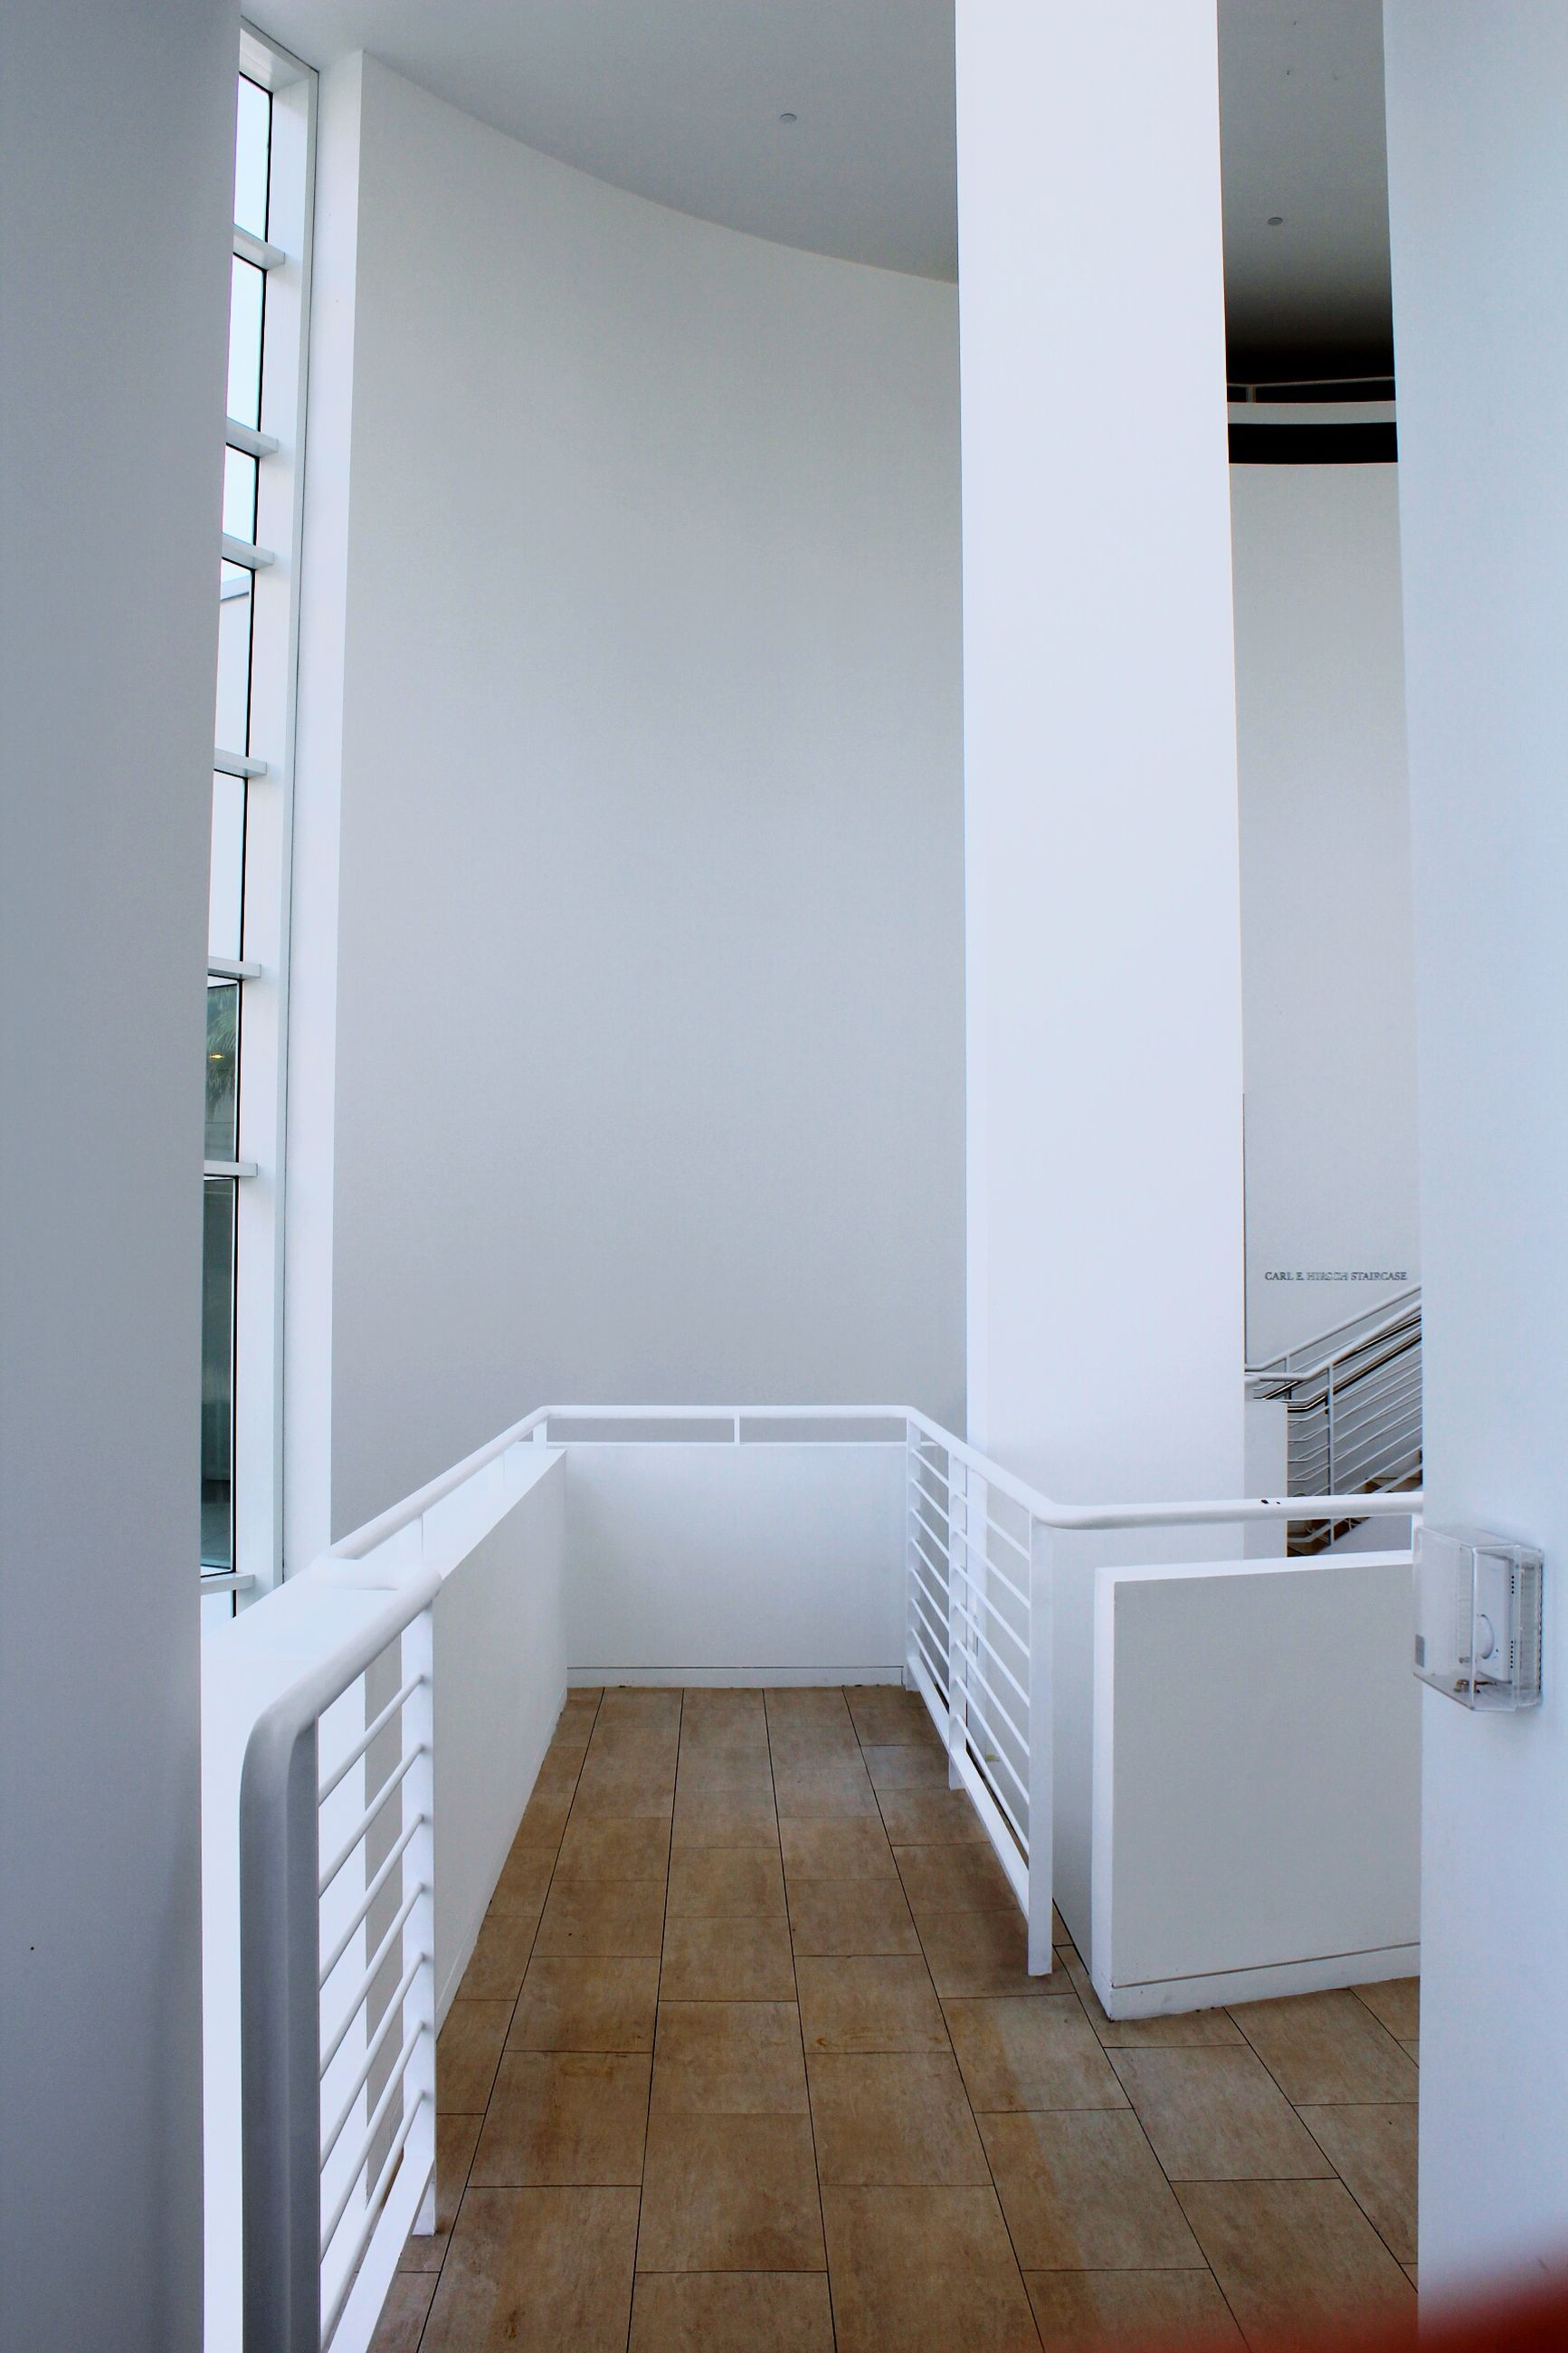 architecture, built structure, indoors, building exterior, window, building, wall - building feature, corridor, modern, wall, railing, no people, home interior, day, house, low angle view, white color, sunlight, residential structure, architectural feature